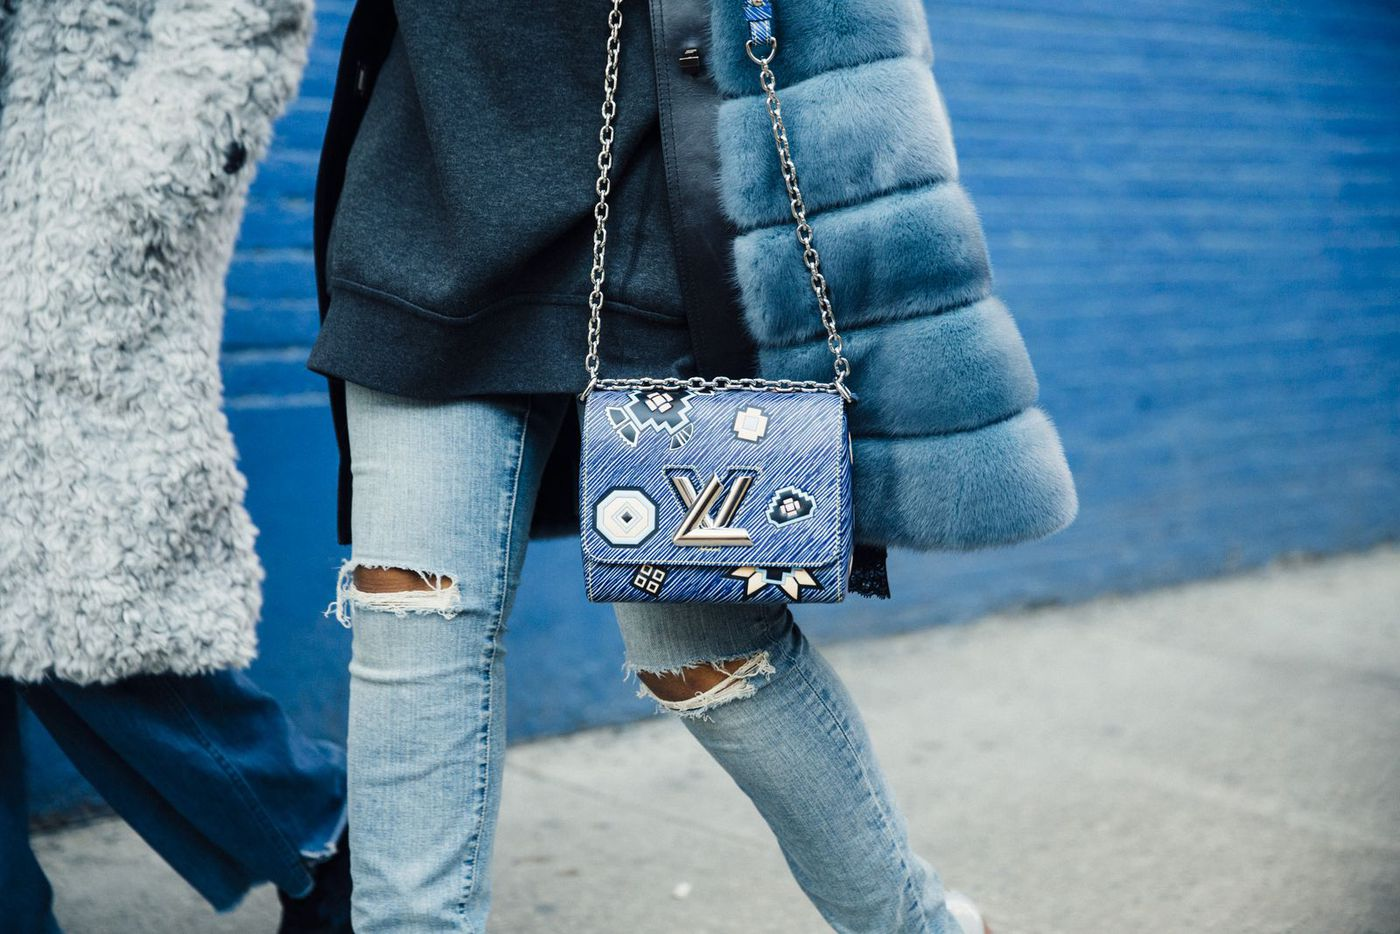 0bf1b35a113 What Designer Bag Has the Best Resale Value? - Racked